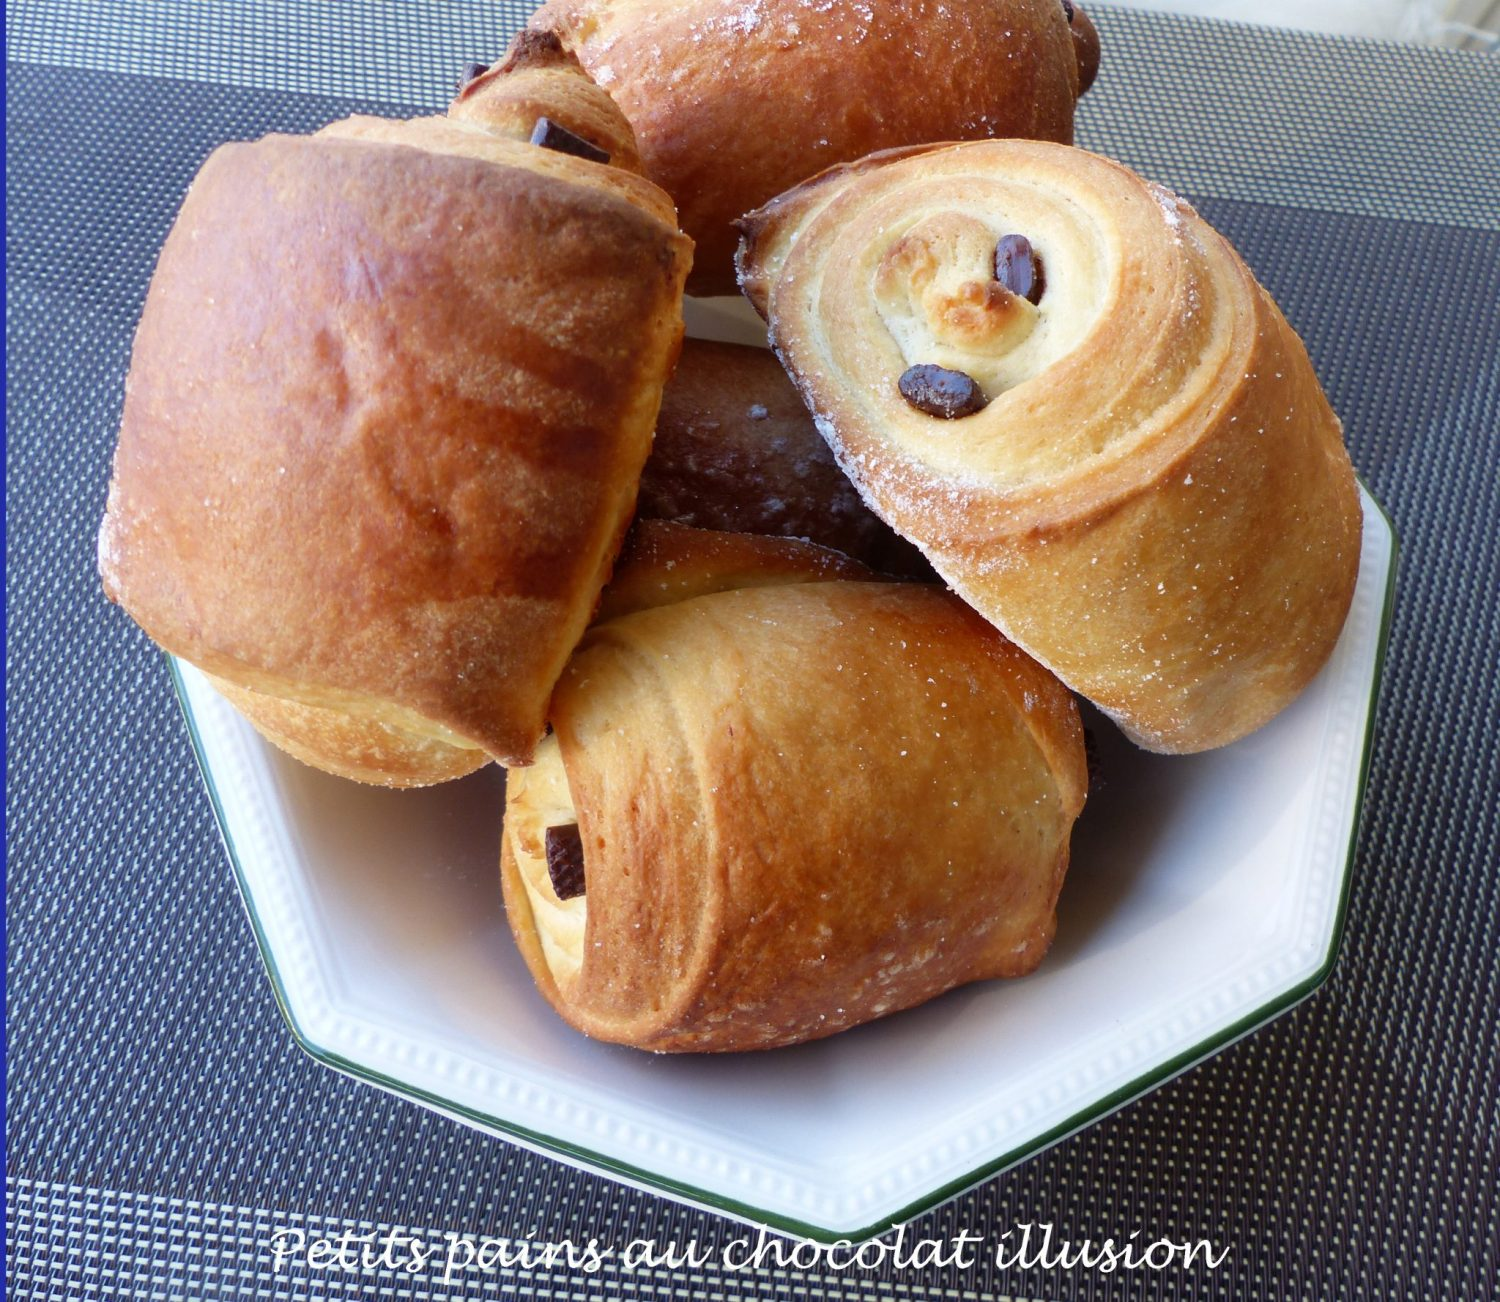 Petits pains au chocolat illusion P1120393 R